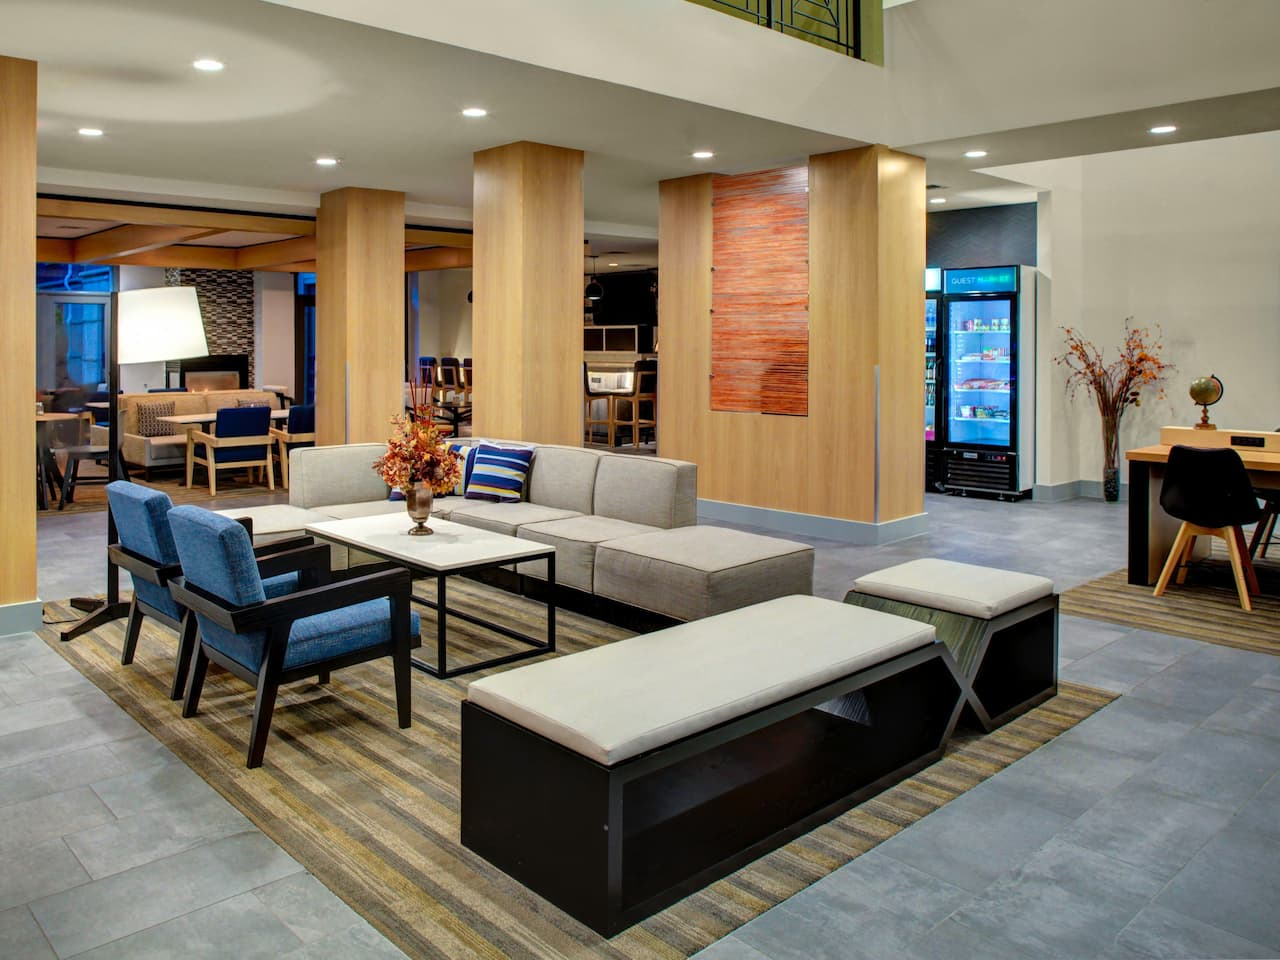 Hyatt House Dallas / Lincoln Park Exterior Lobby